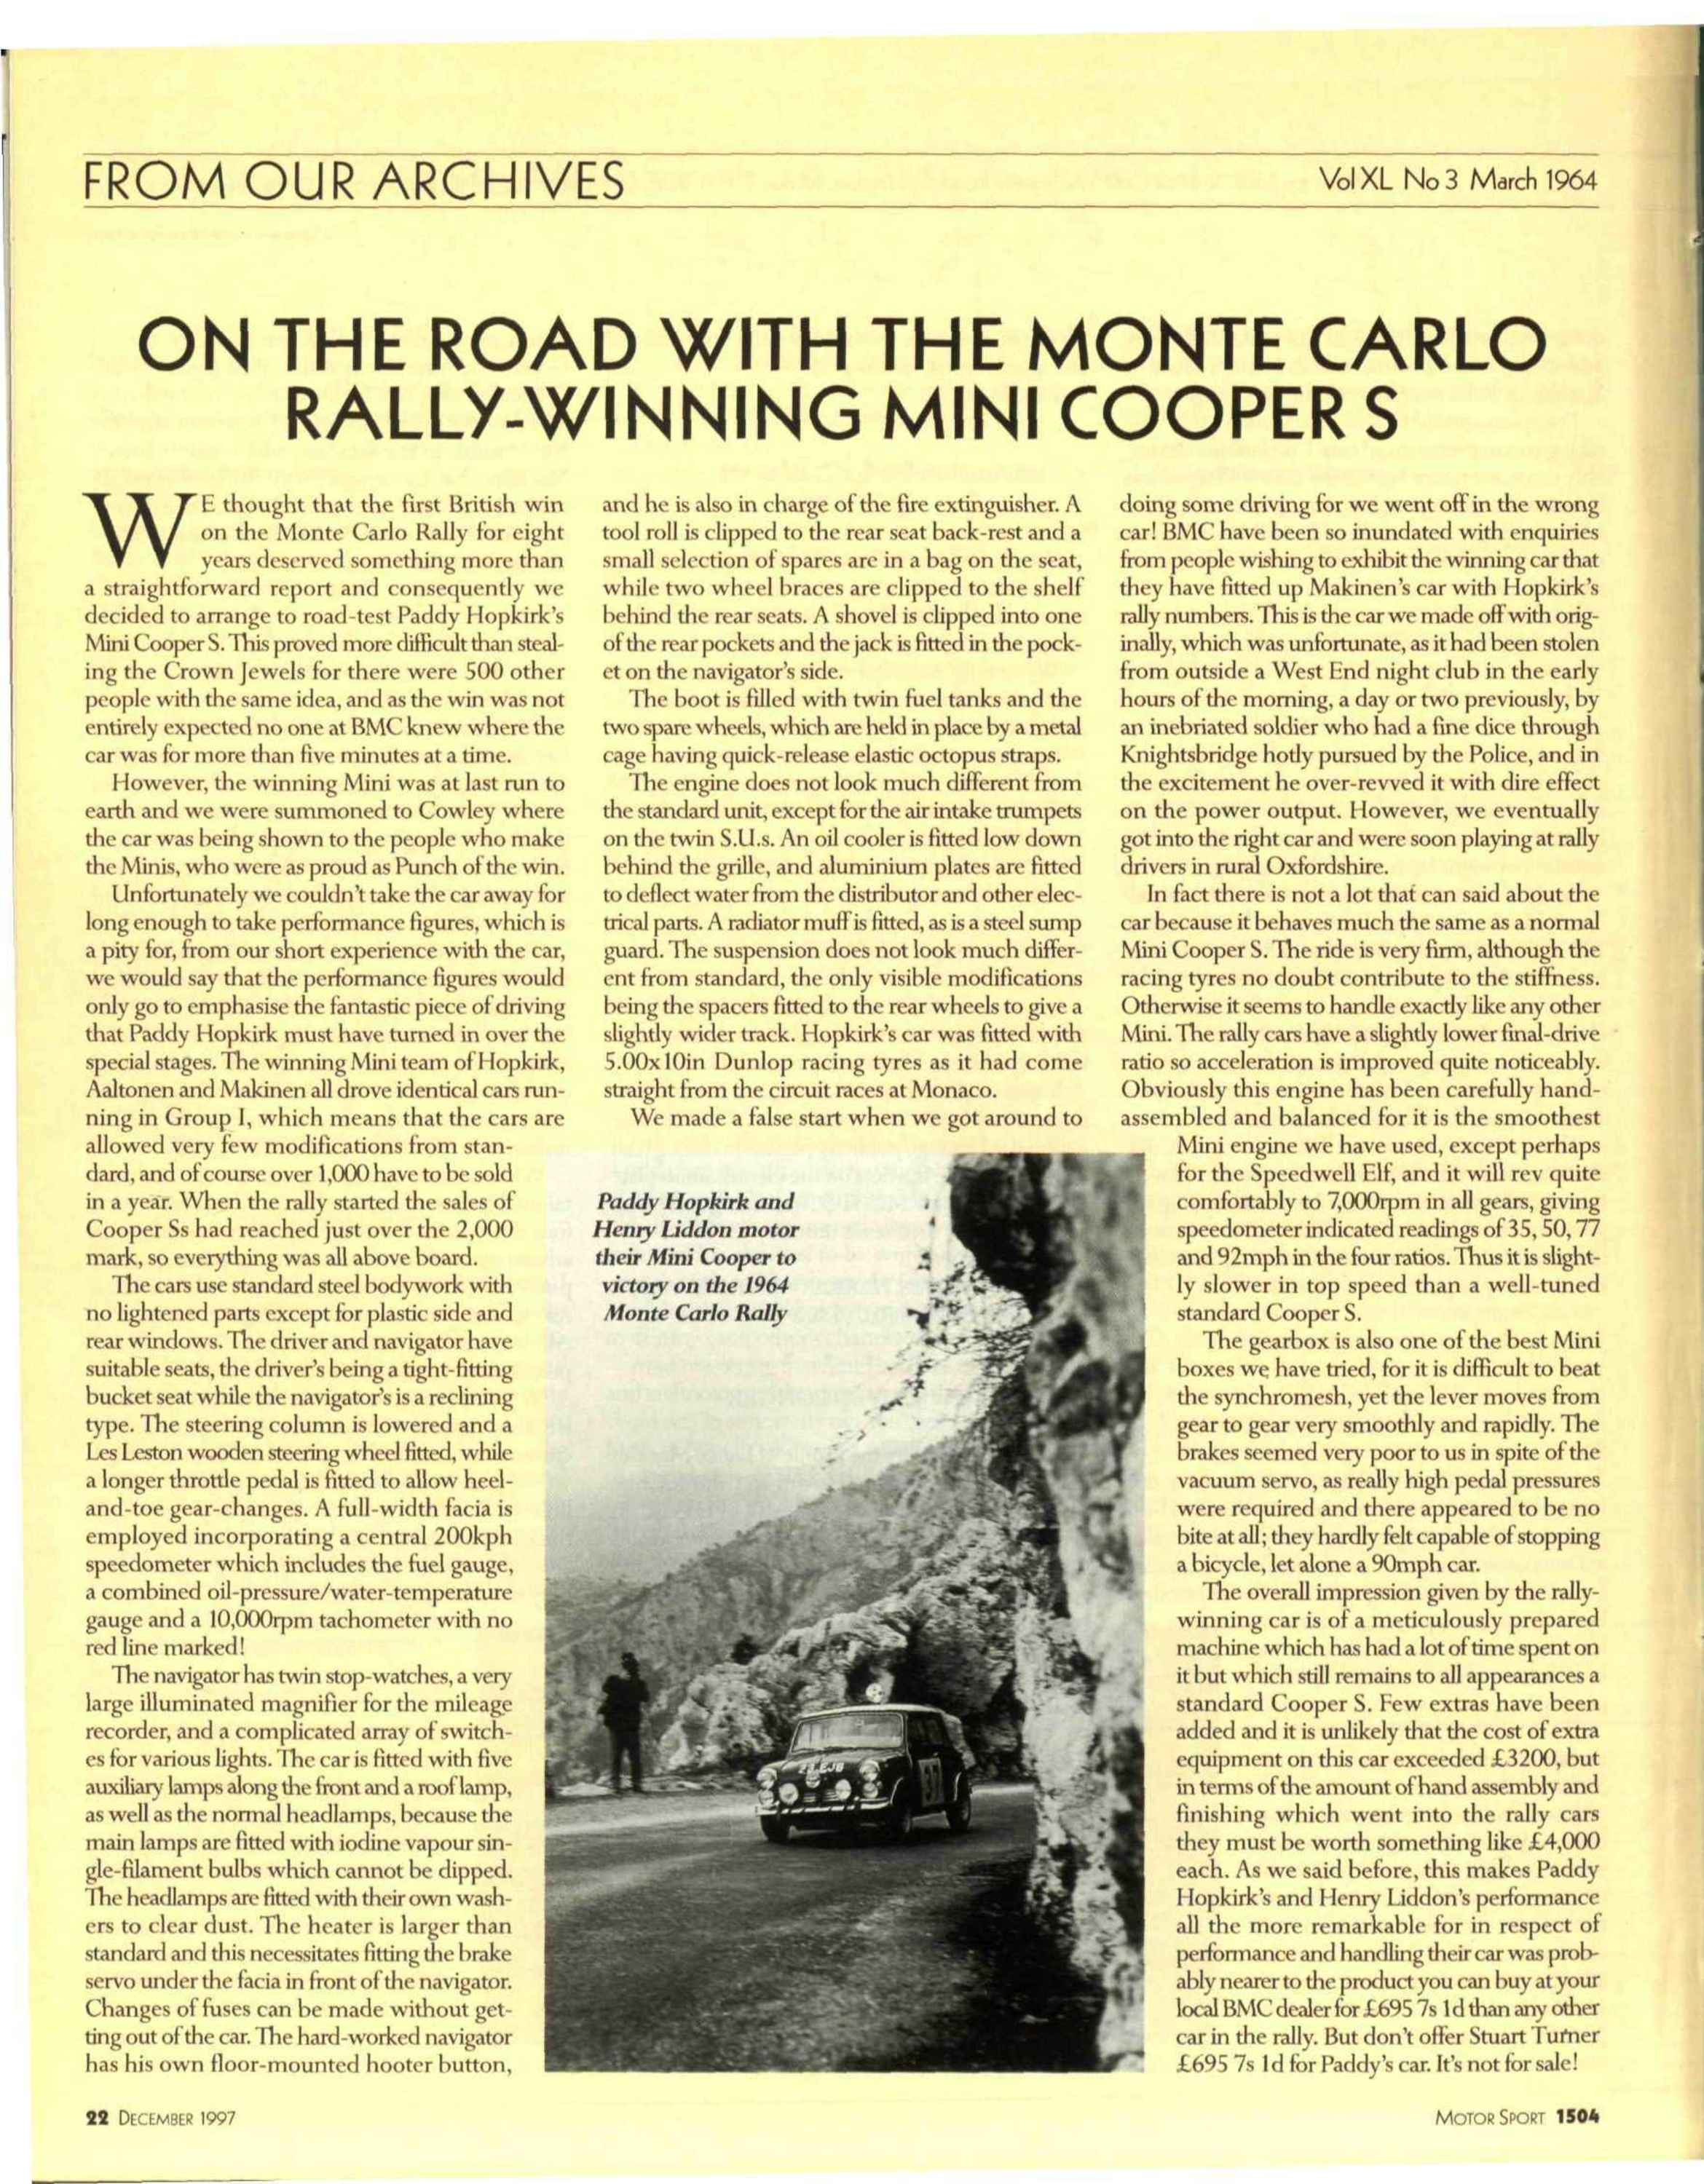 From our Archives   On the road with the Monte Carlo rally winning Mini Coopers image